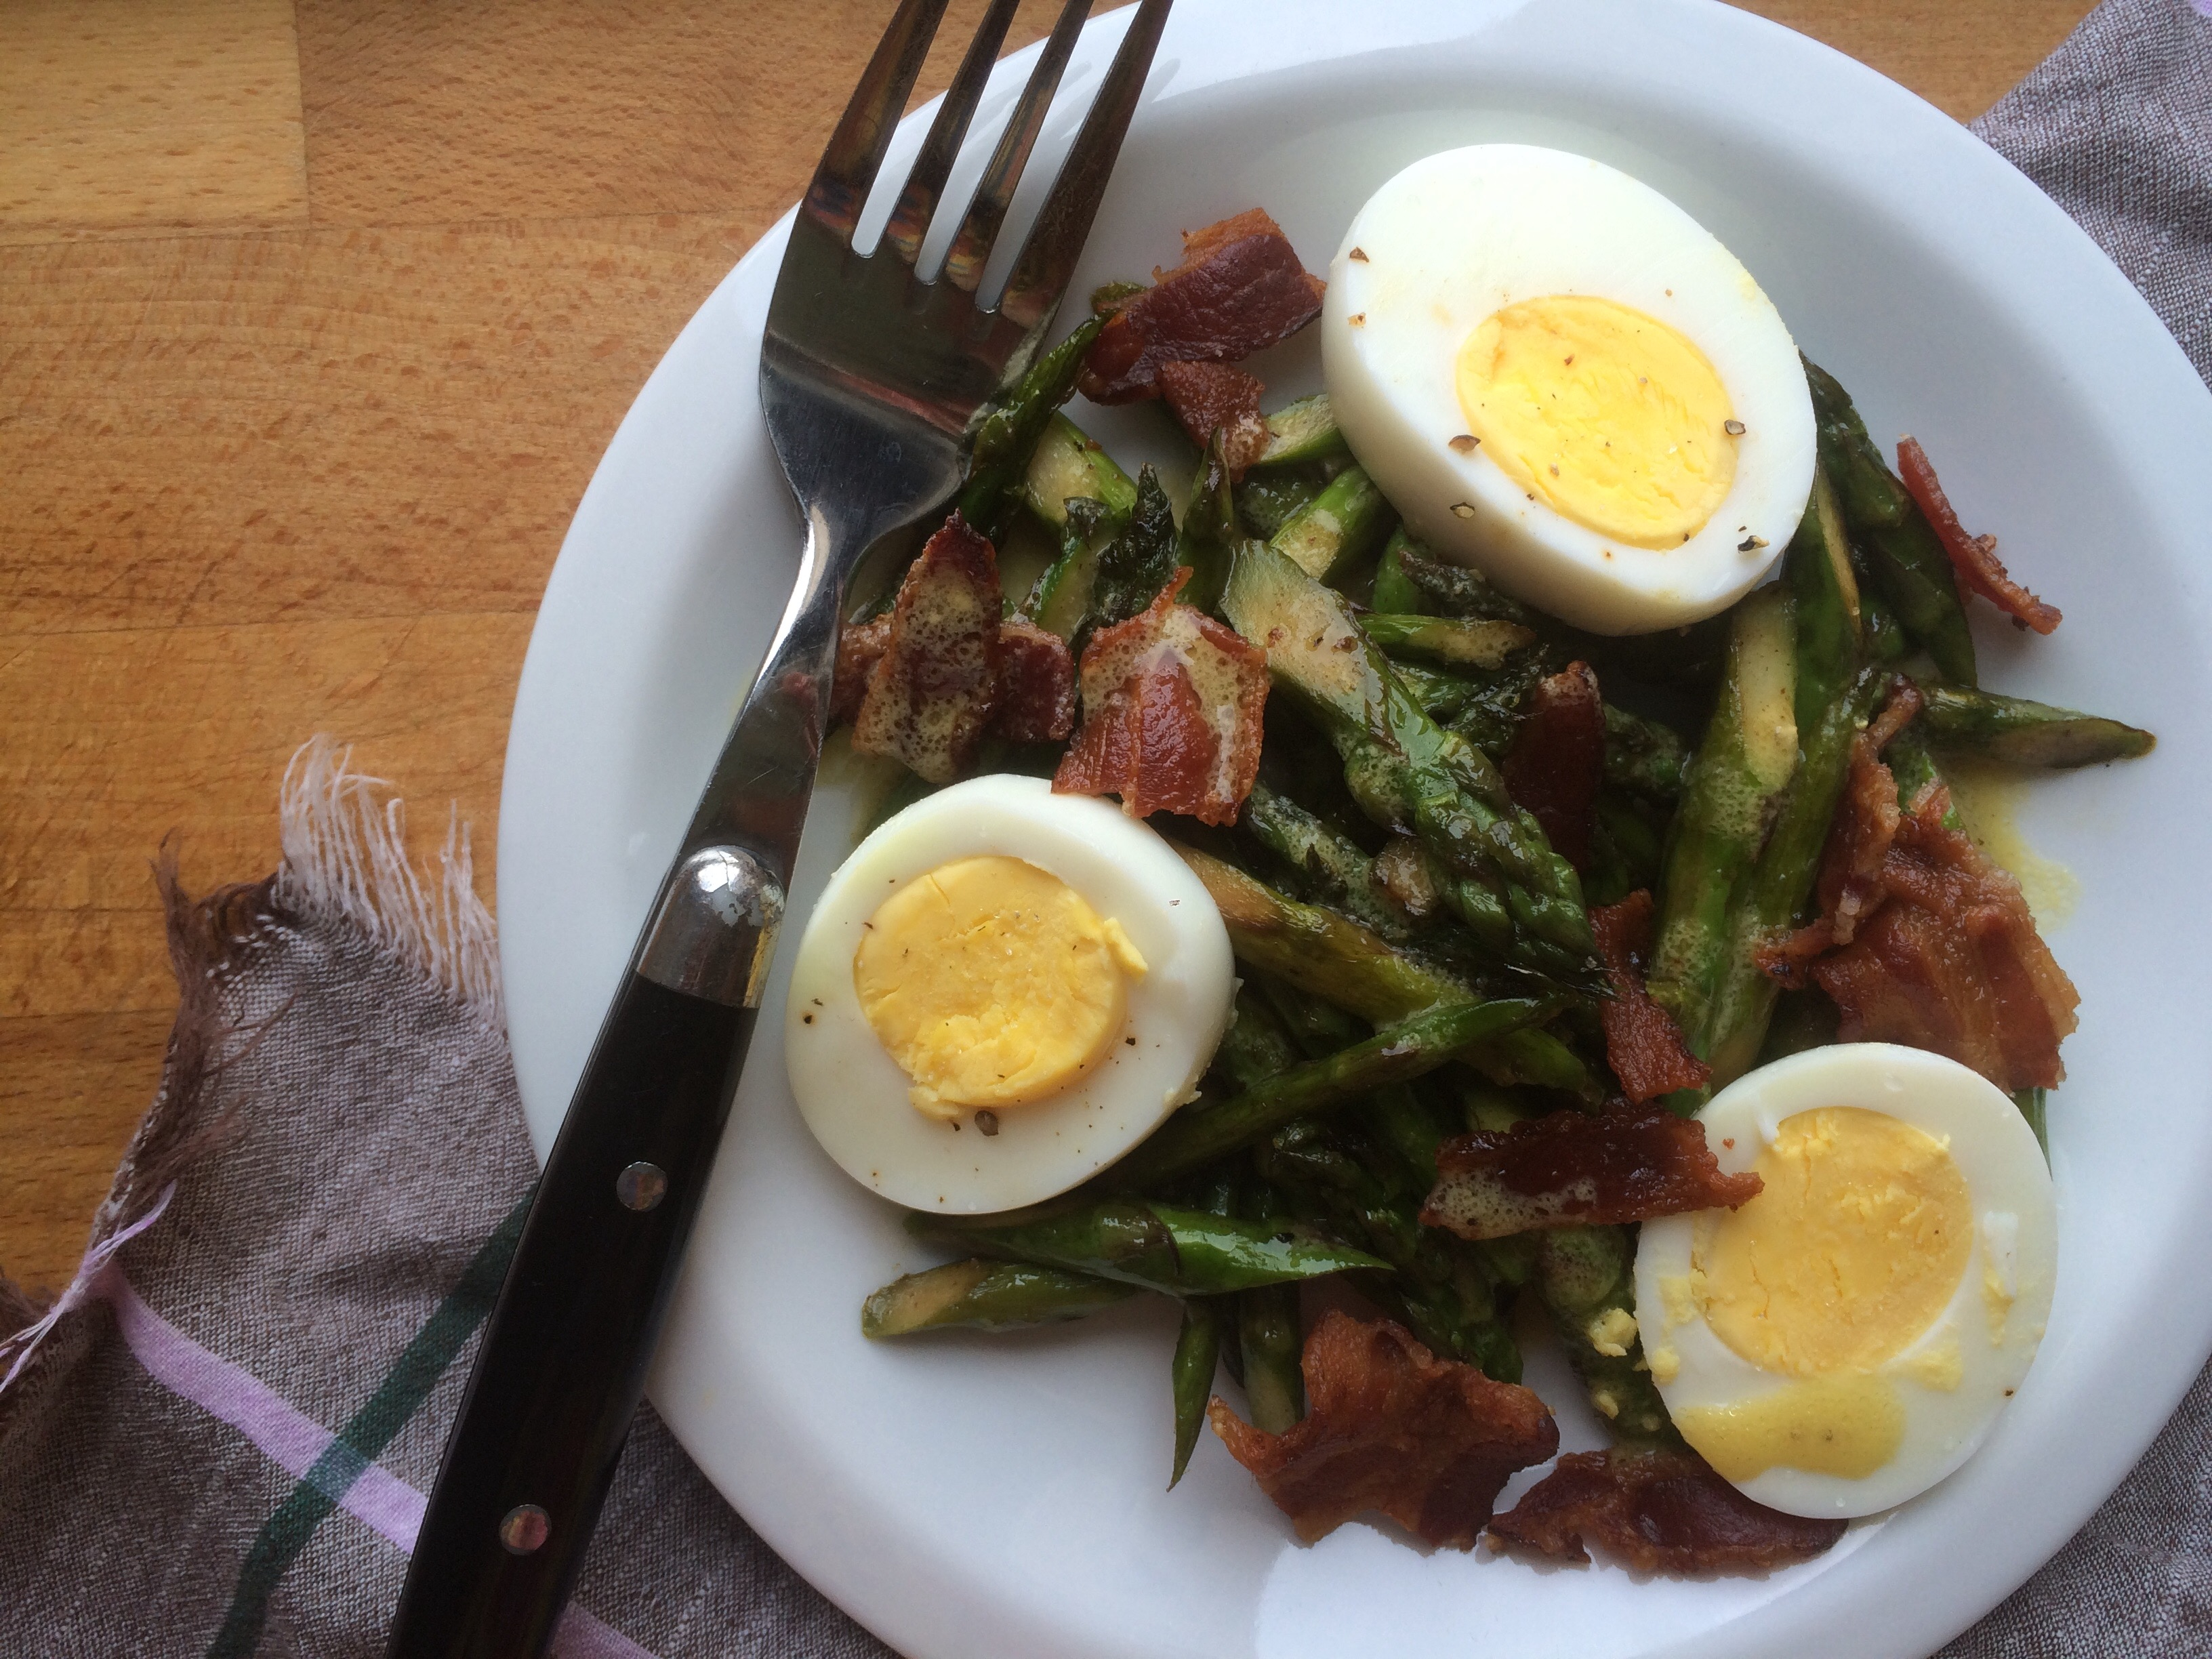 Asparagus, Egg and Bacon Salad with Dijon Vinaigrette3